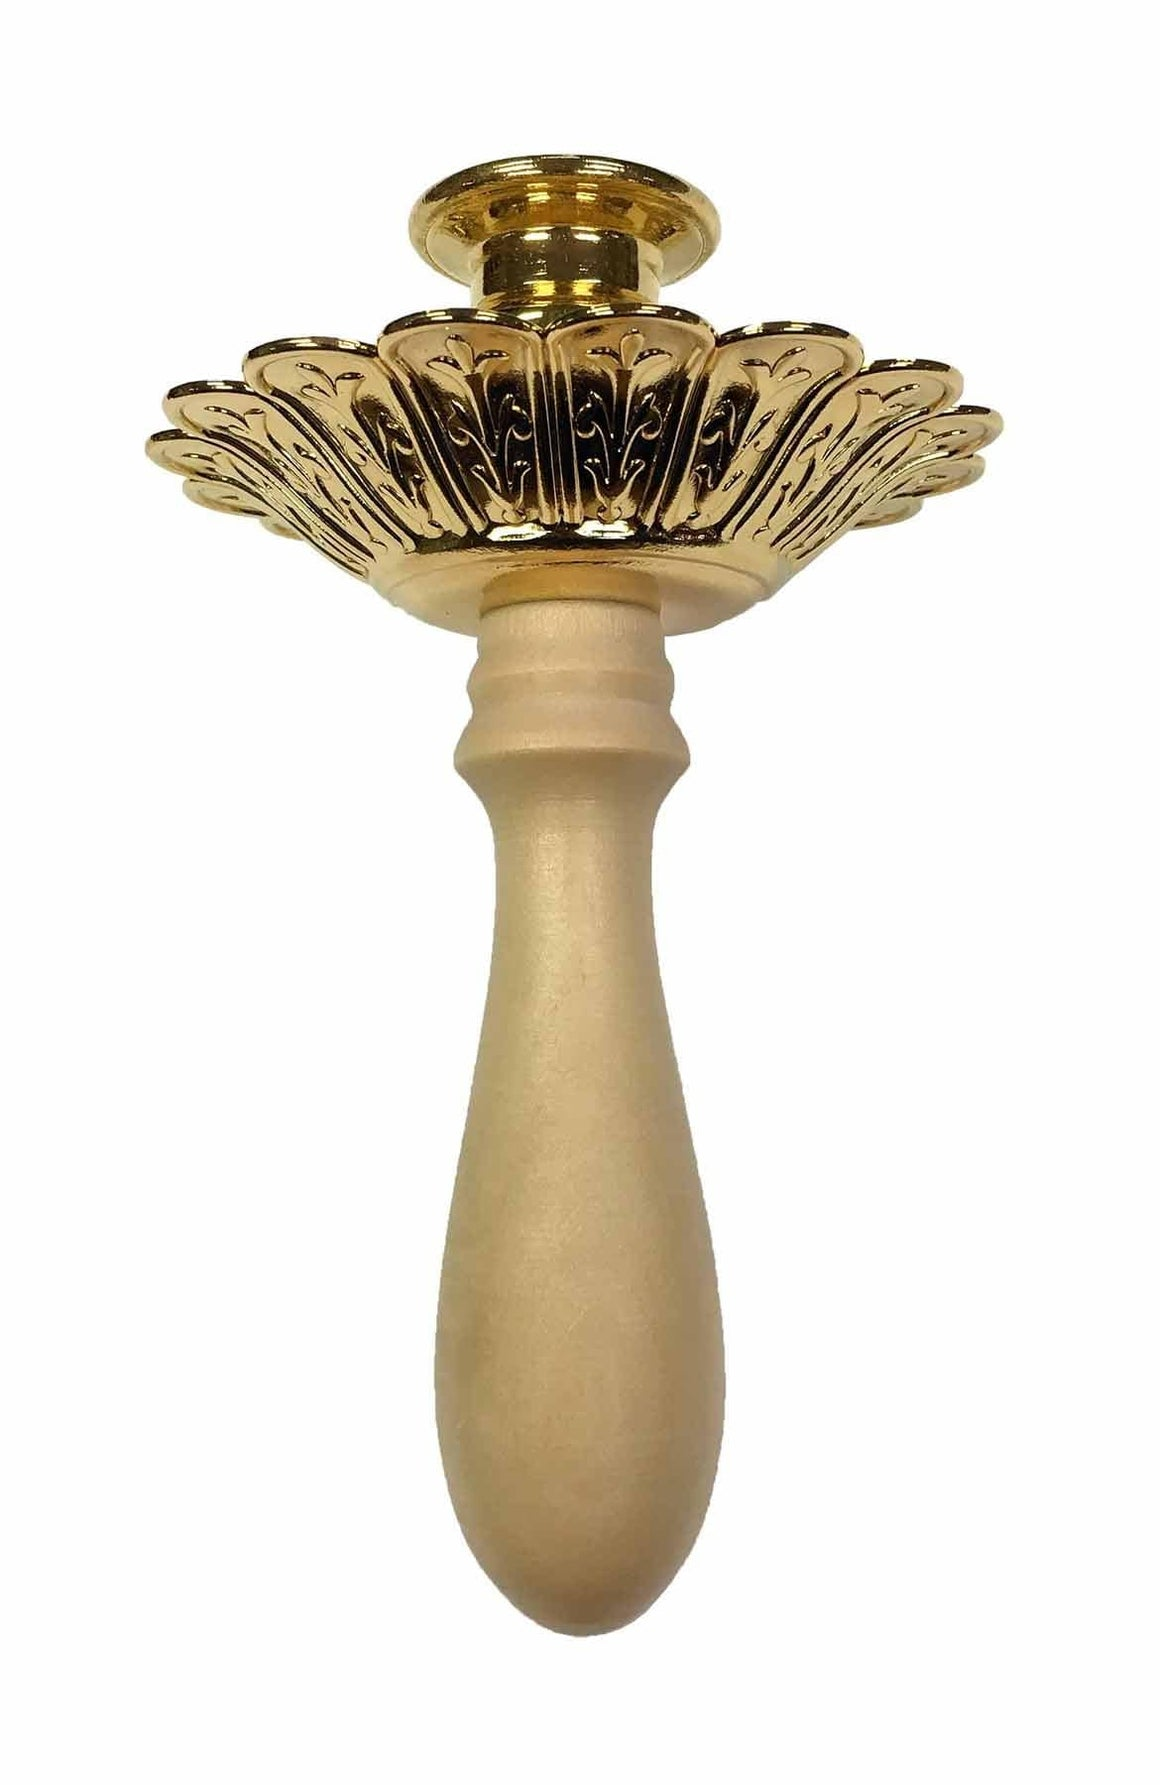 Handheld Candle Holder for Clergy